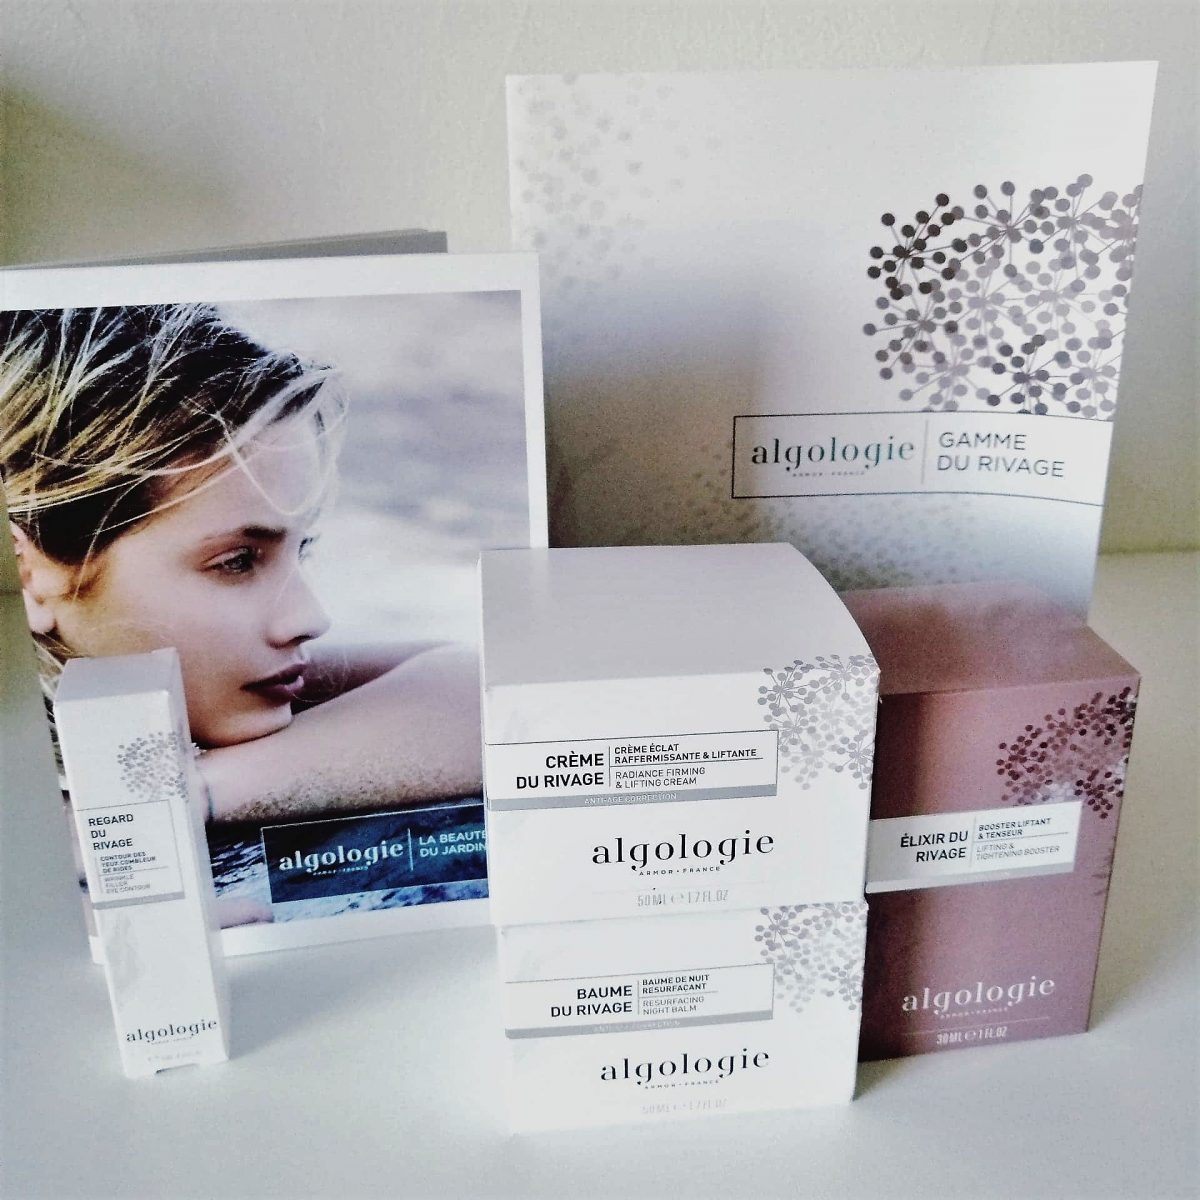 algologie - beauty success - soins - antiage- cosmetique - marine